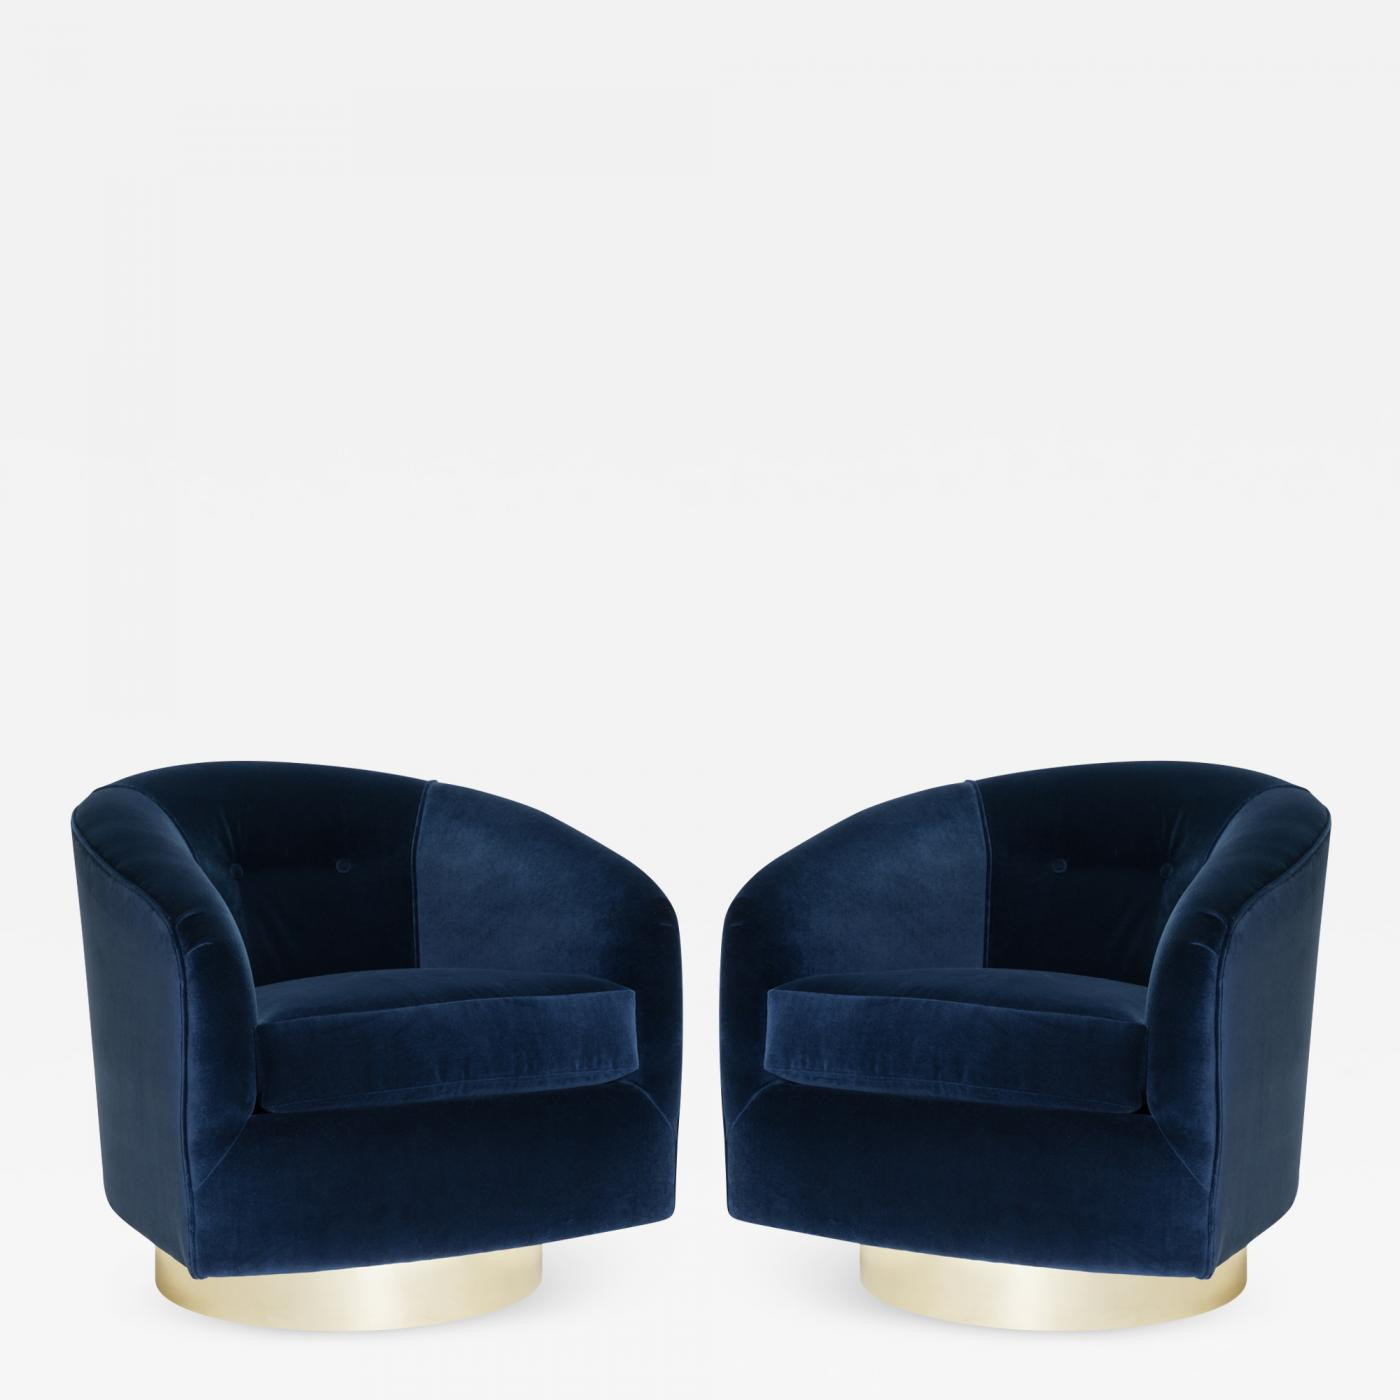 Peachy Swivel Tub Chairs In Navy Velvet With Polished Brass Bases Pair Camellatalisay Diy Chair Ideas Camellatalisaycom